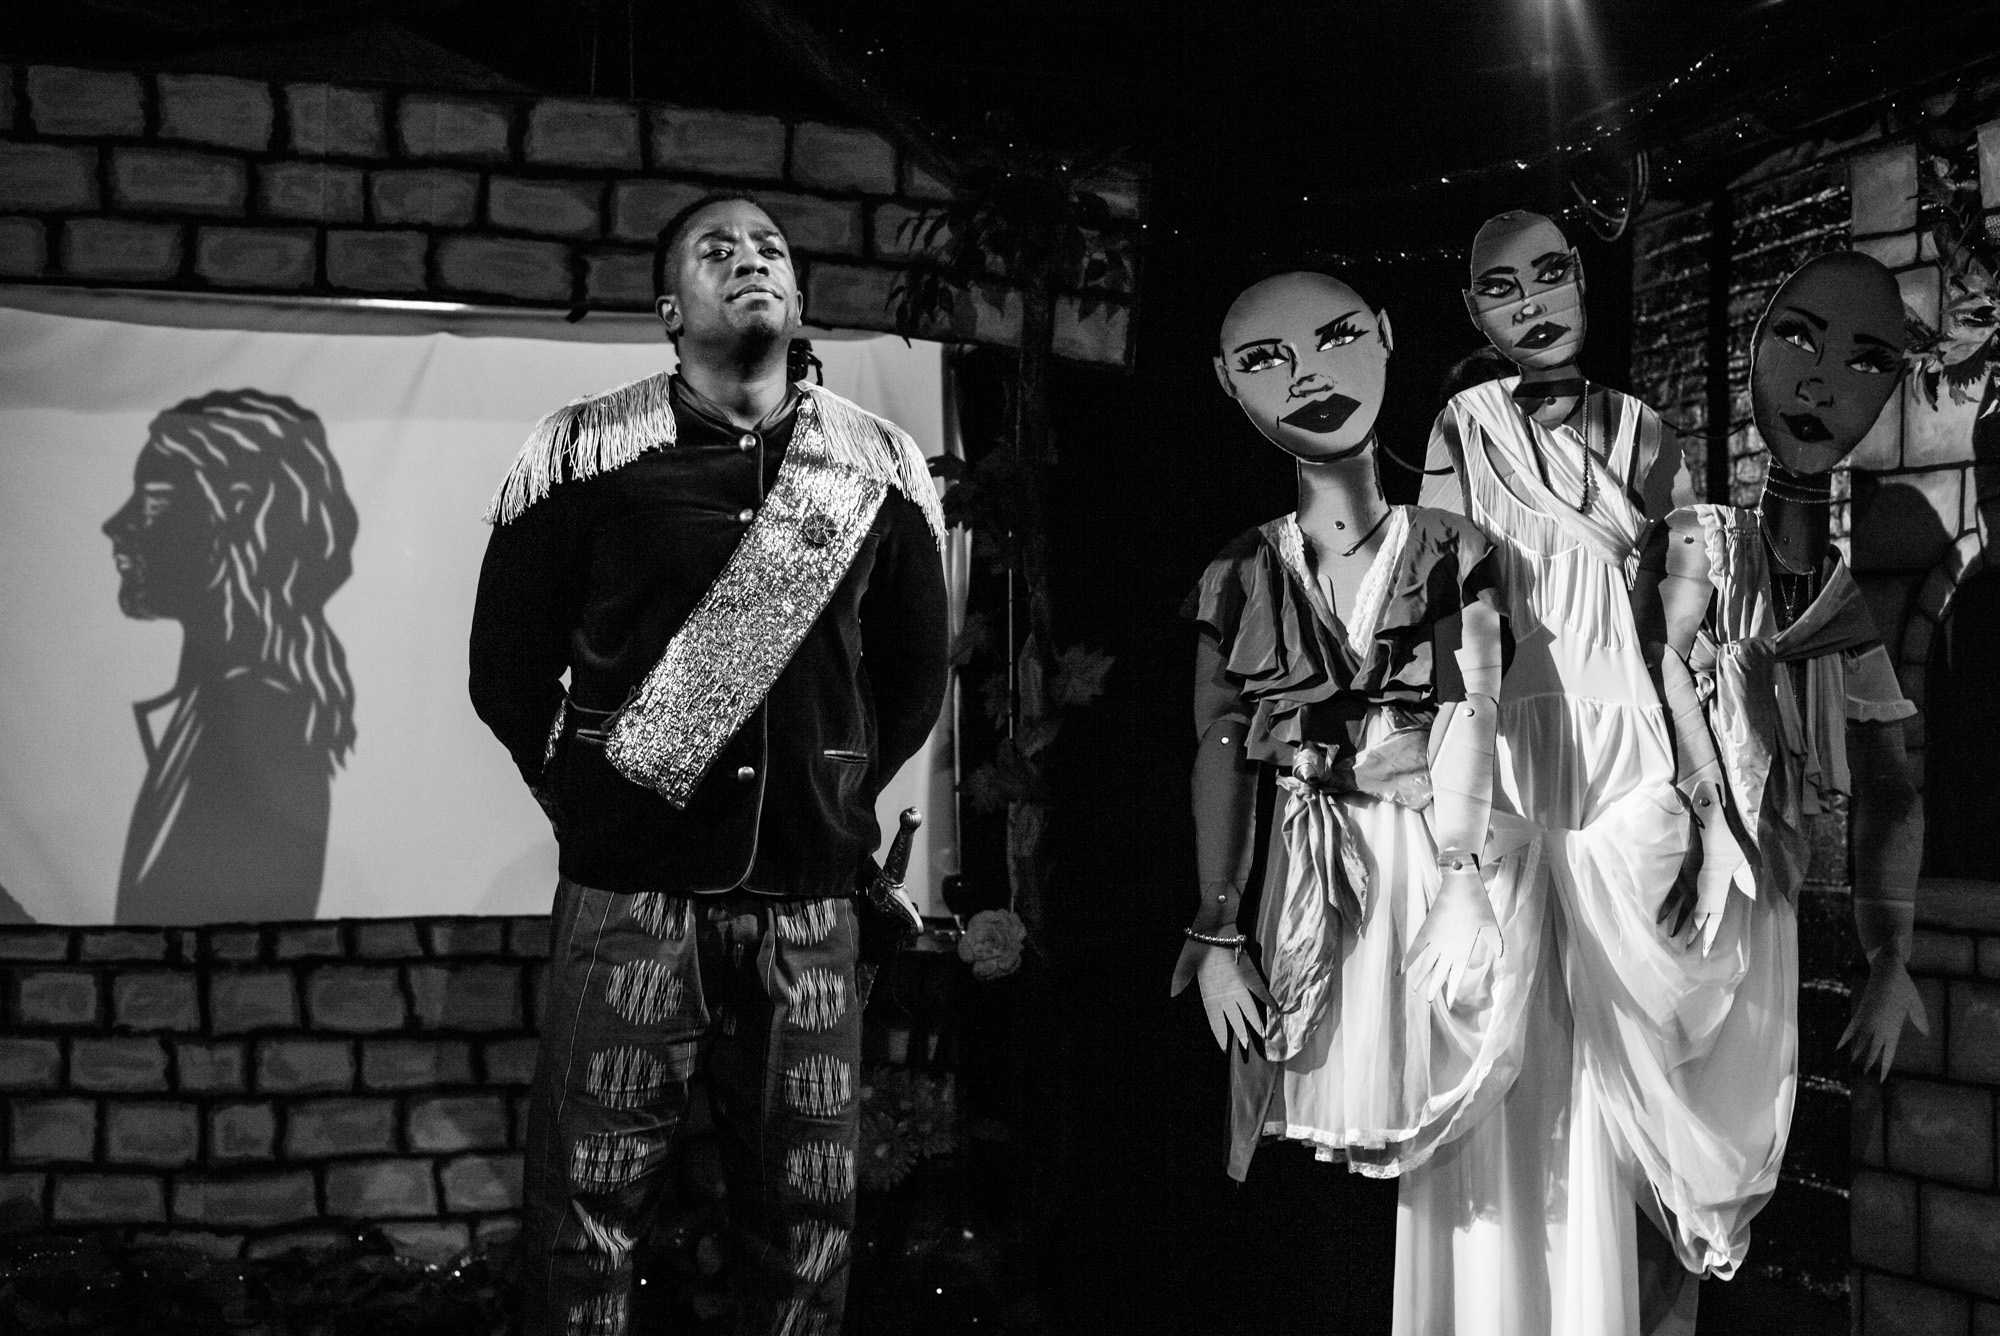 Midnight Radio Show performers on stage in black and white with puppets